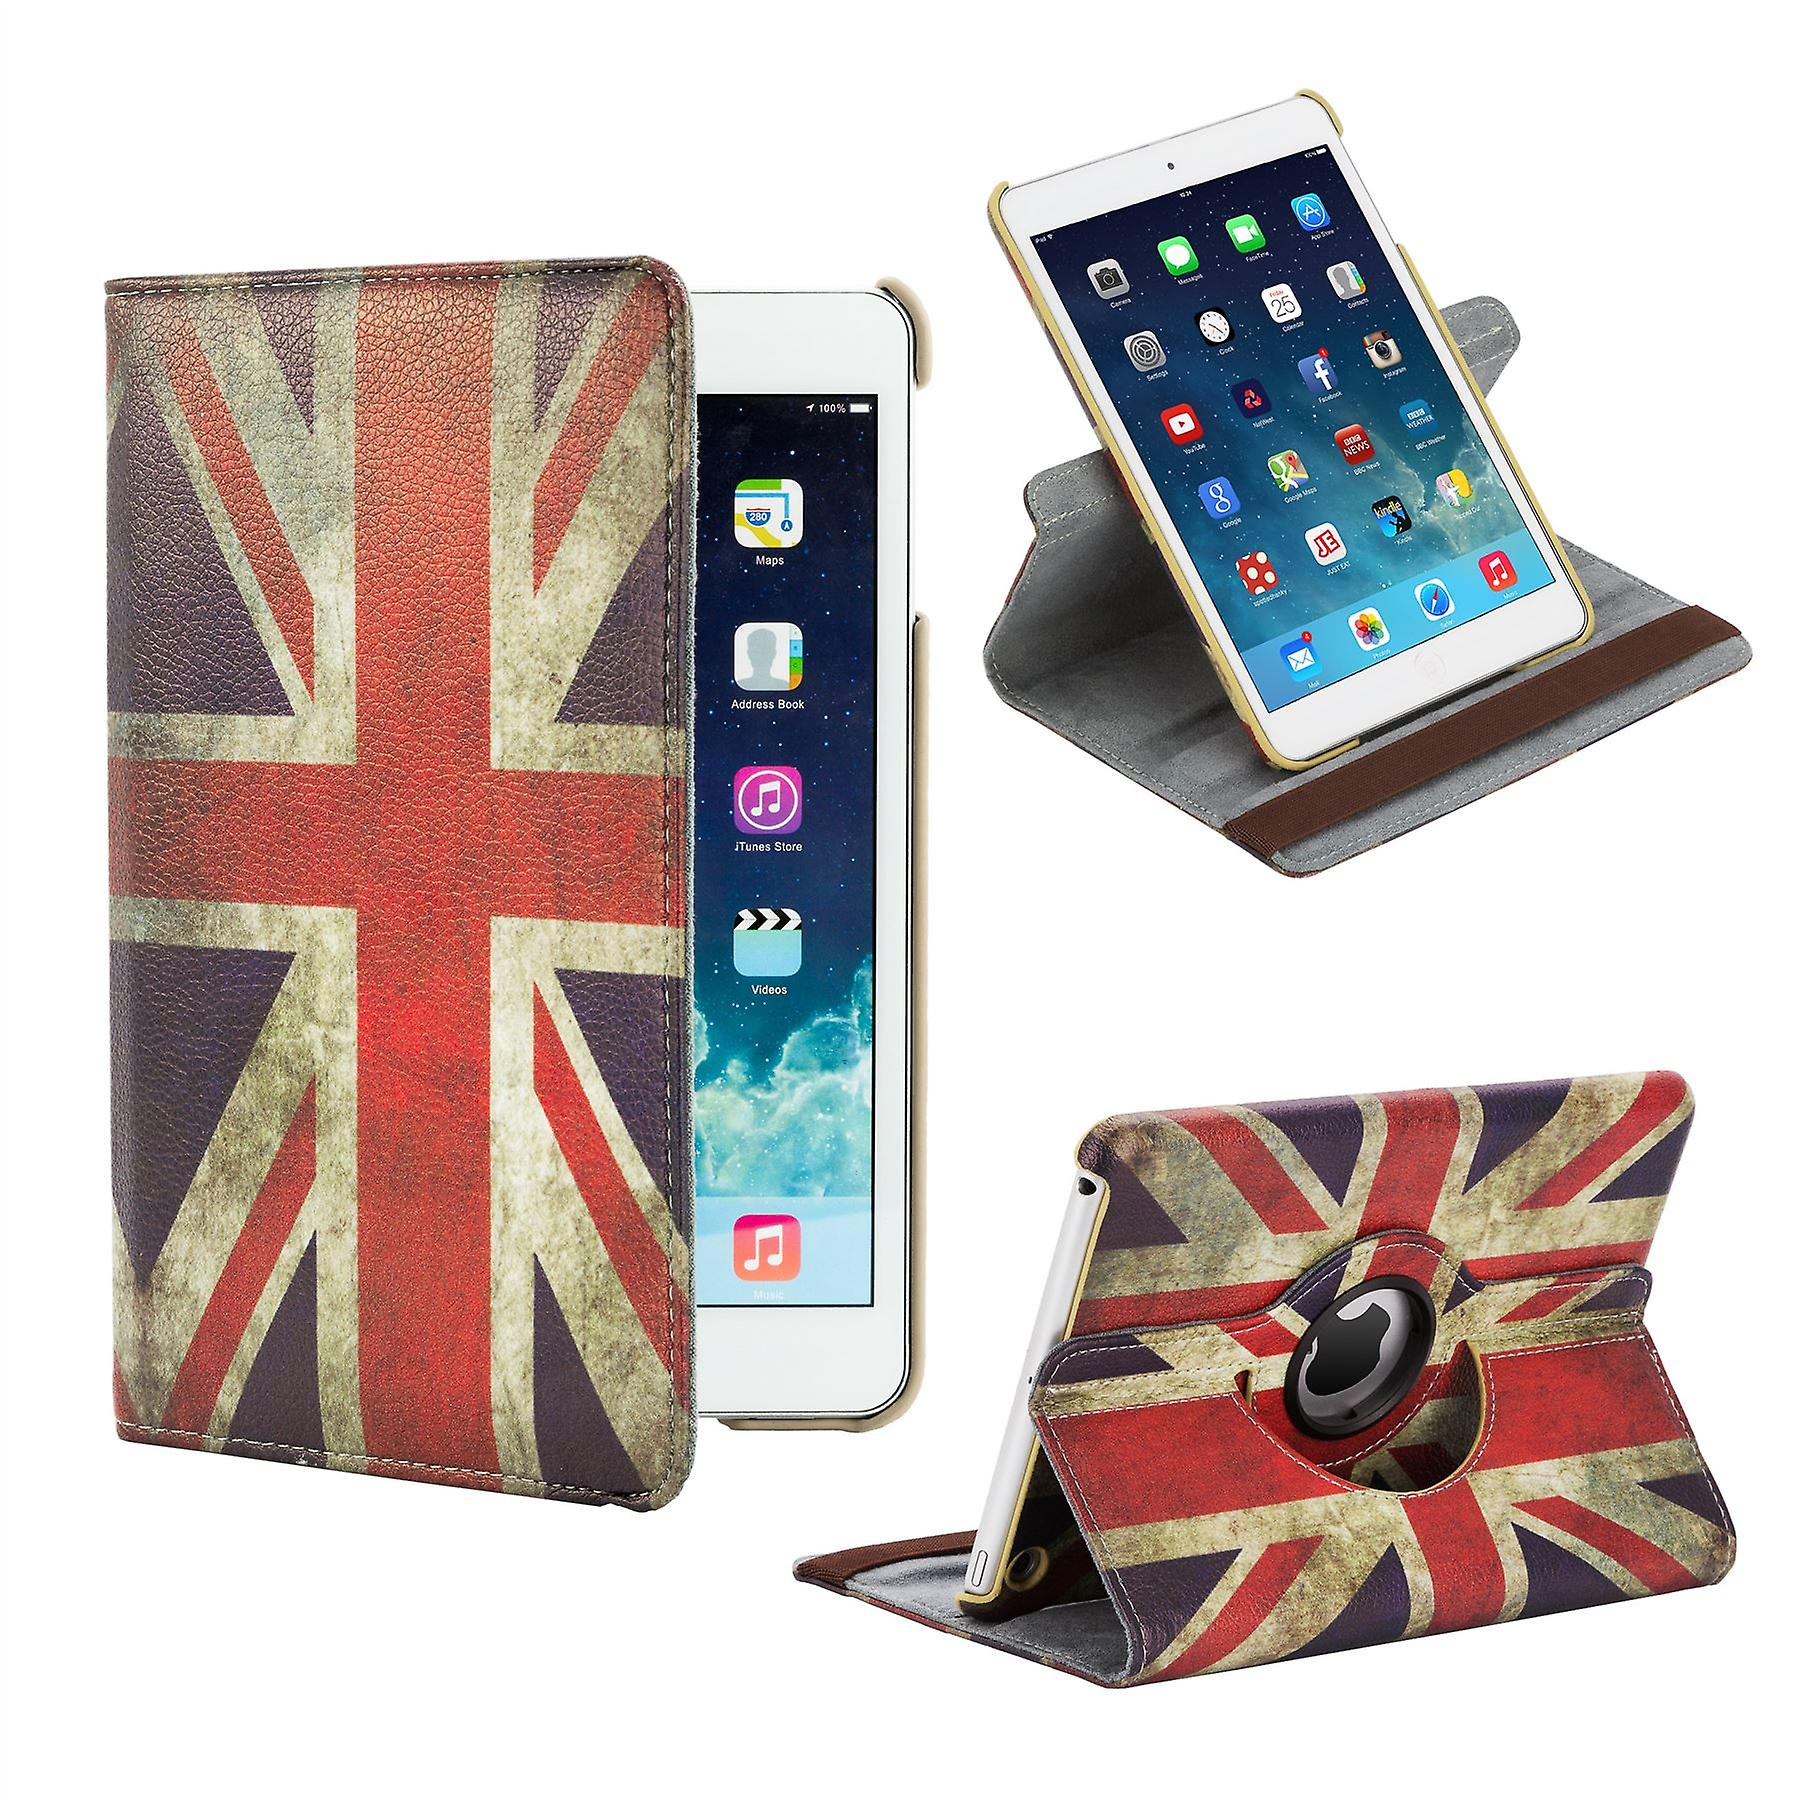 360 degree Design Book case for Apple iPad Mini 4th Gen - Union Jack